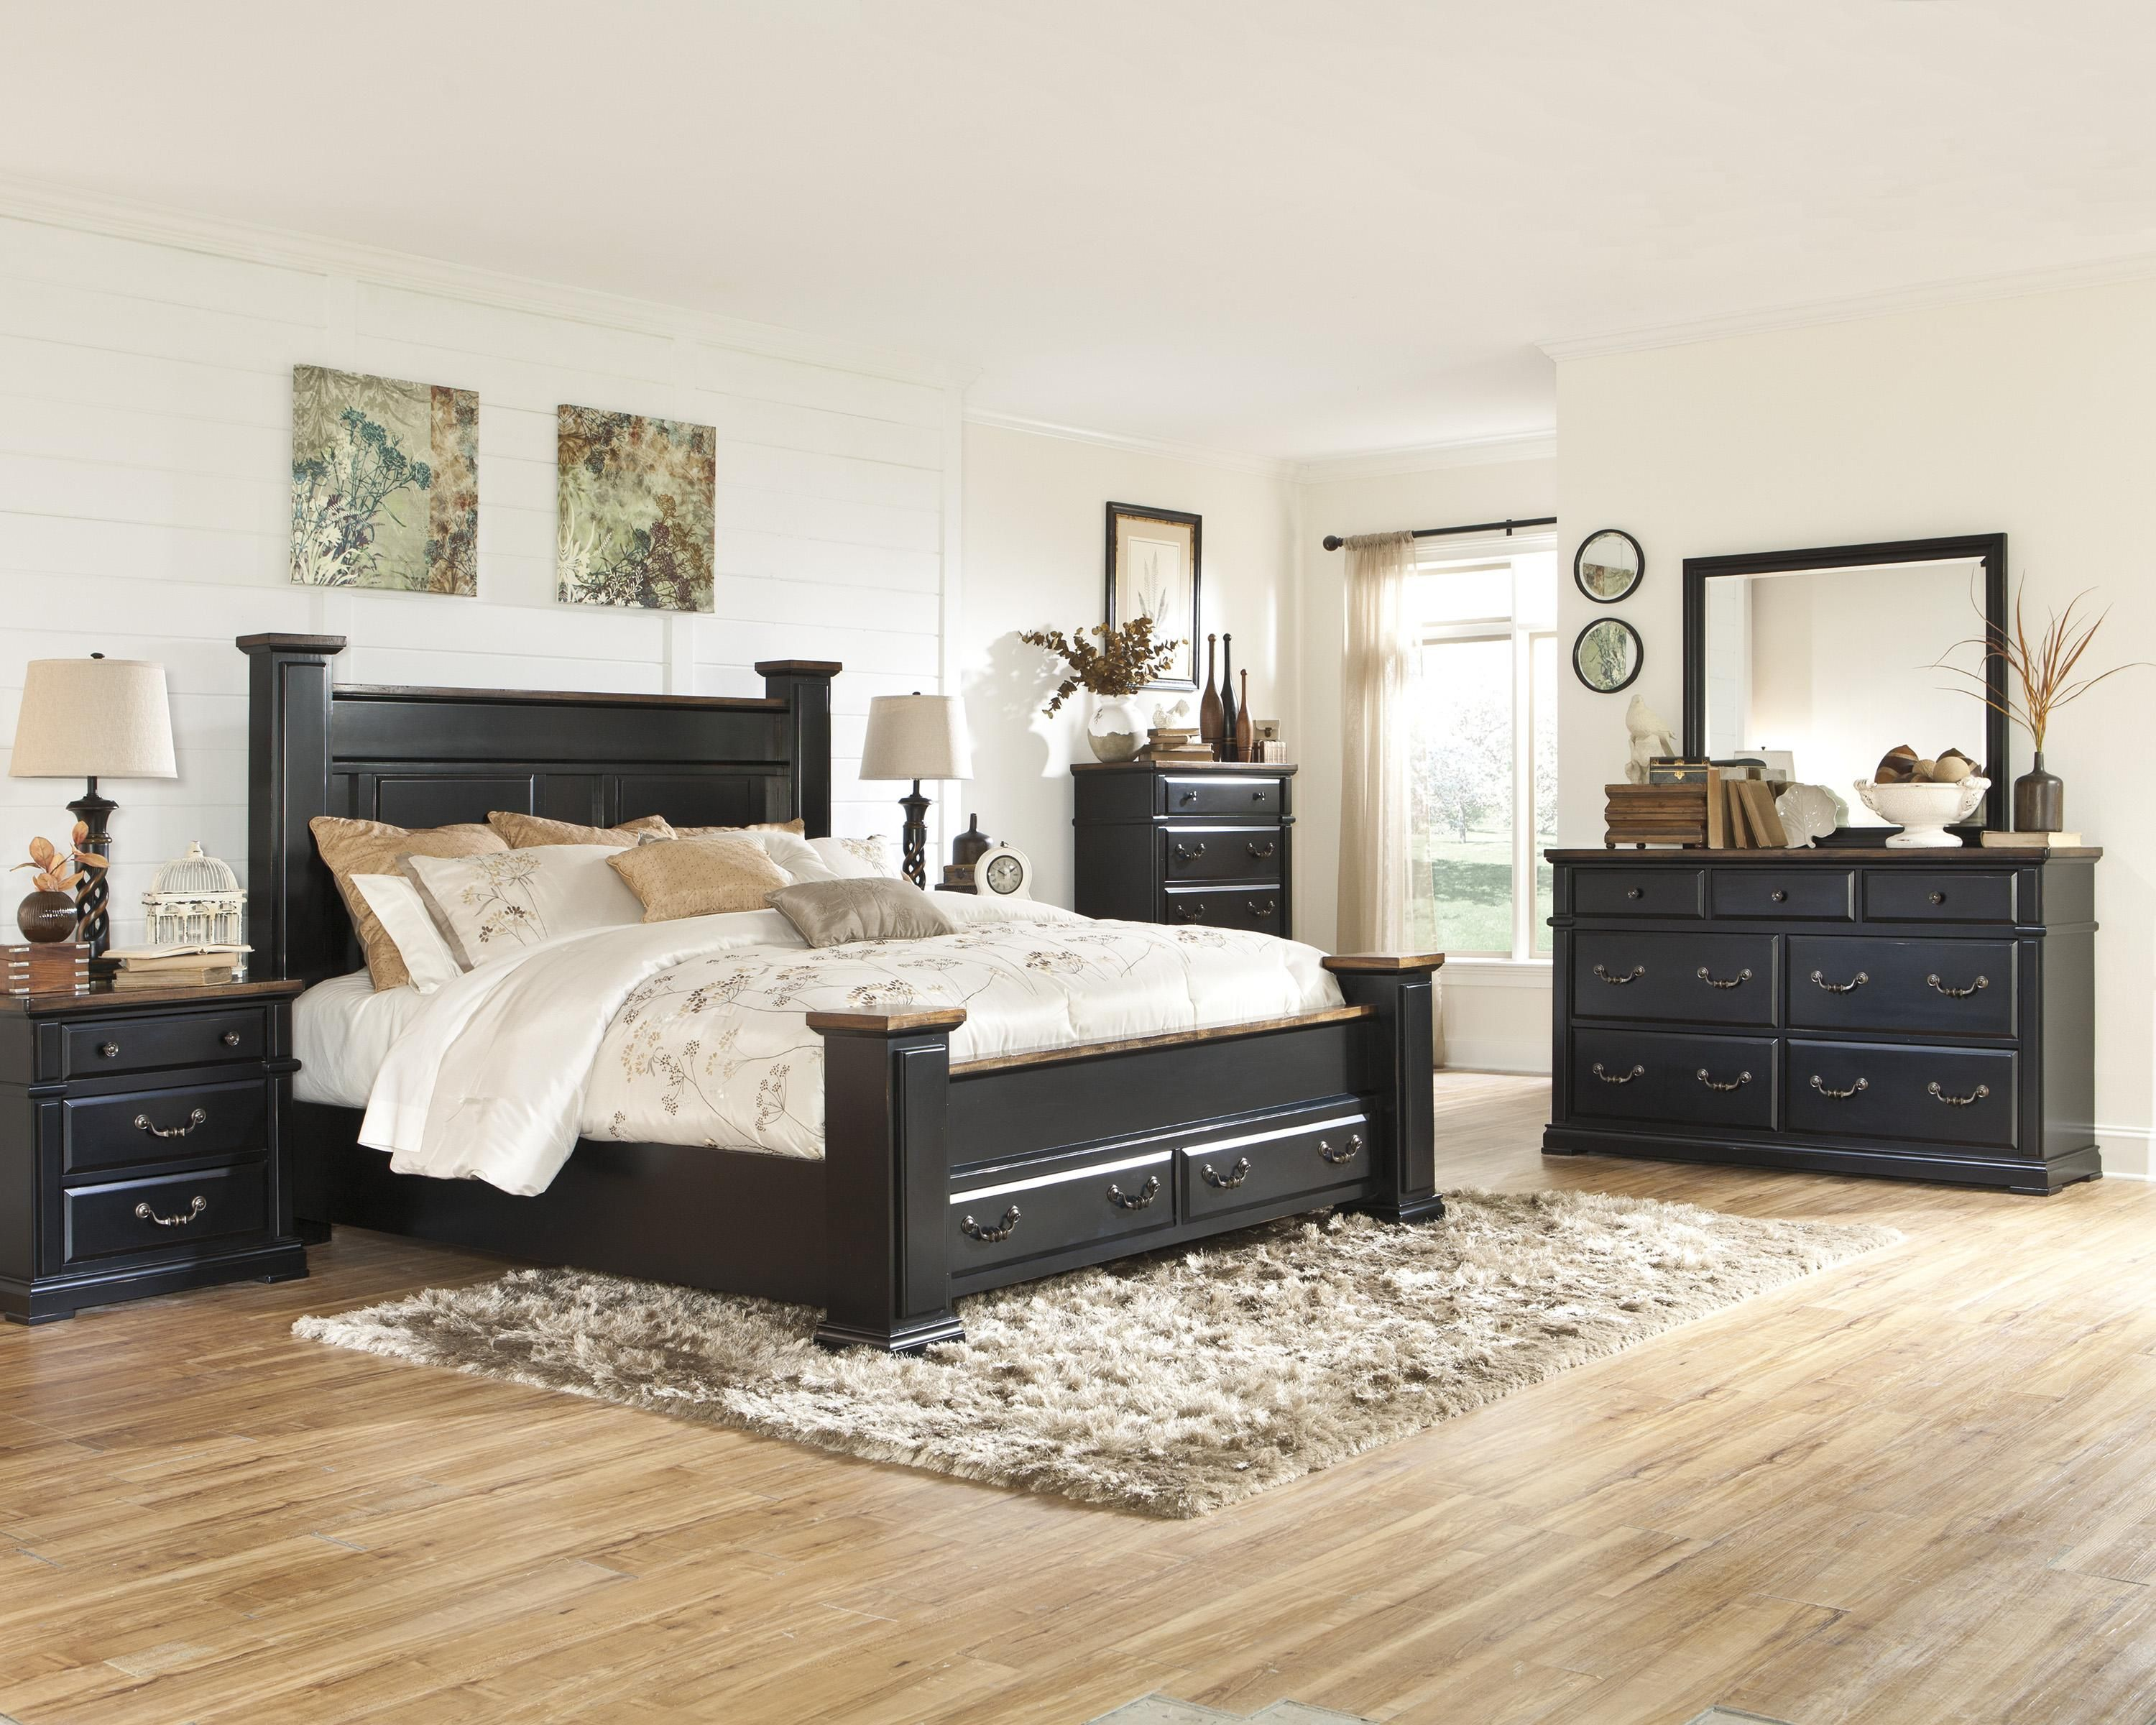 The breen master bedroom collection is full of rustic design touches